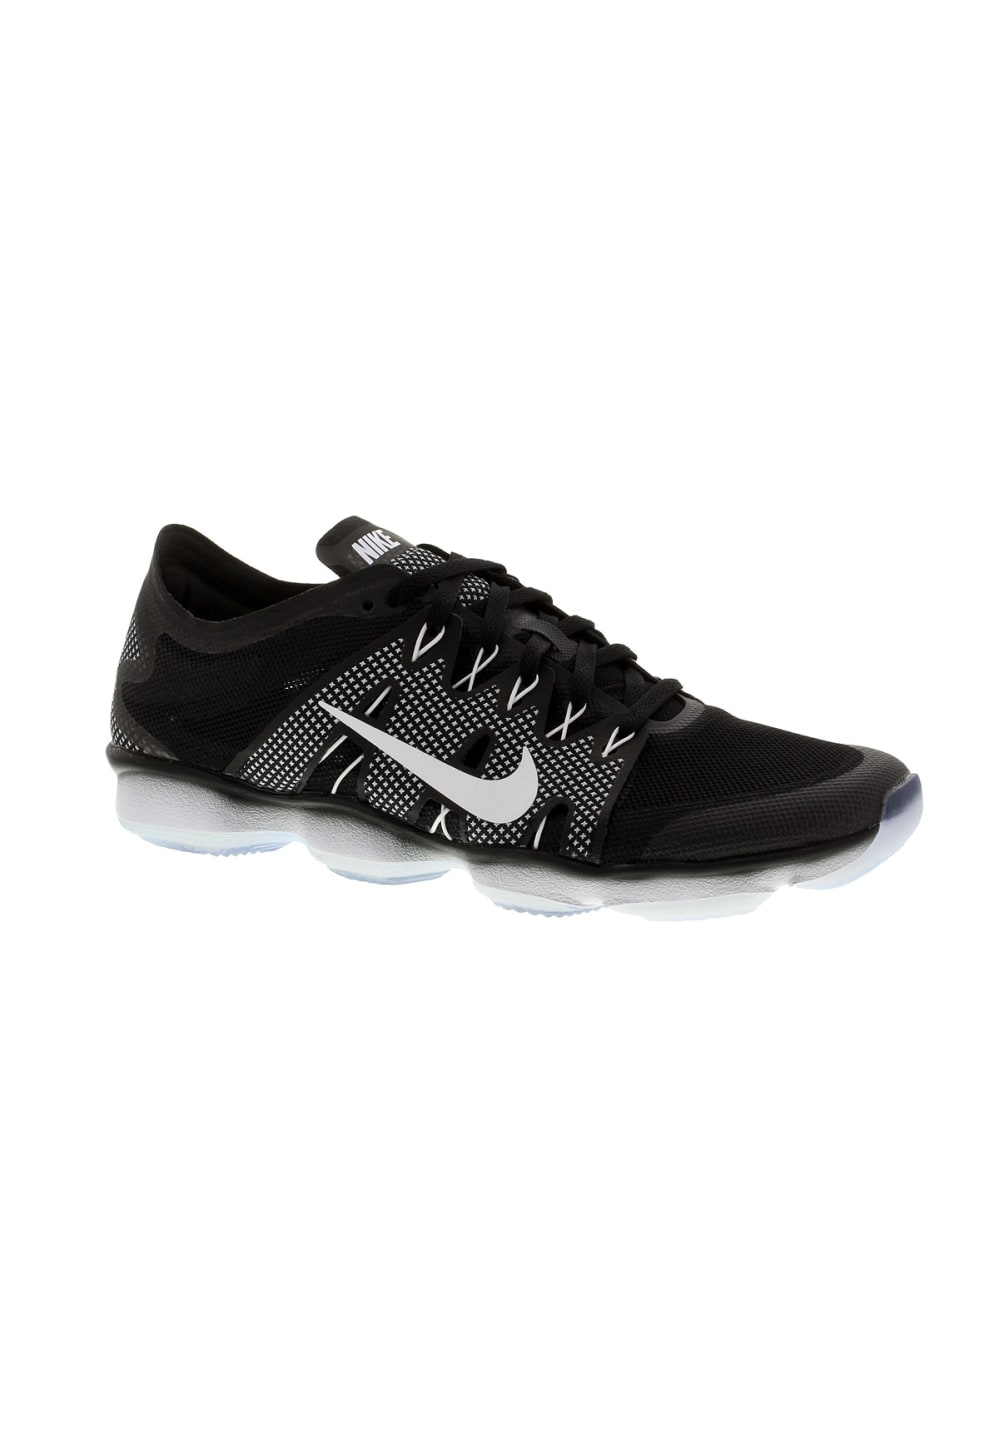 Femme Air Fit Nike Pour Fitness Zoom Noir Agility Chaussures 2 13KFTlcJ